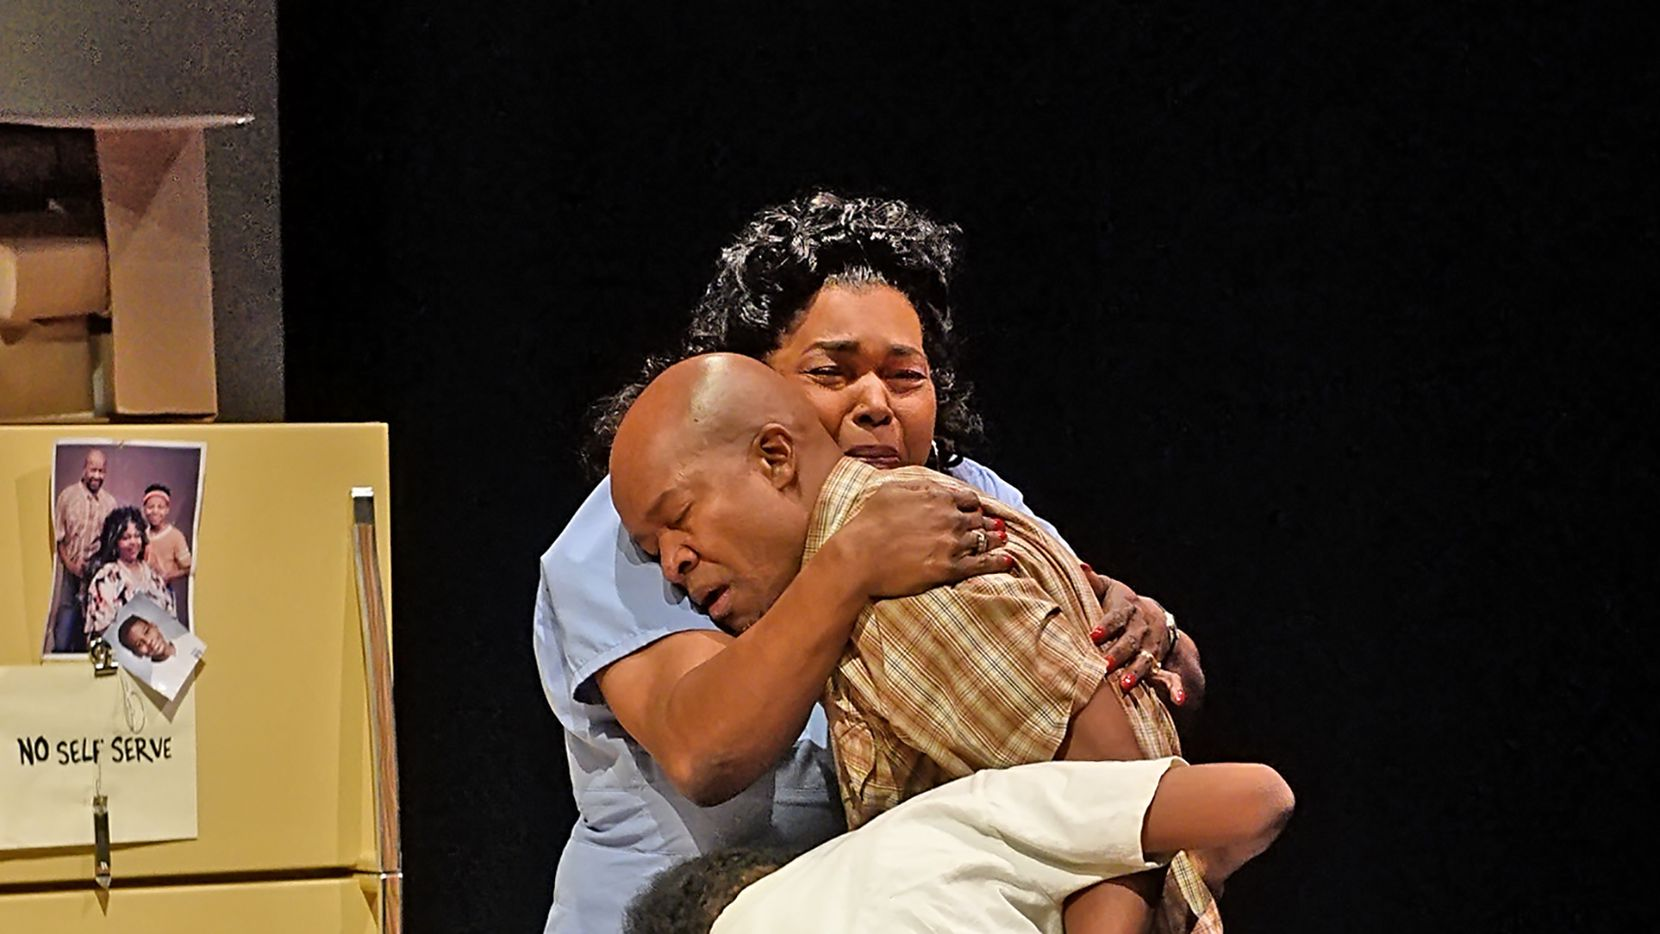 Laura Mae (LIz Mikel), her husband Dubba-J (Leon Addison Brown) and their son Jon-Jon (Esau Price) come together in the aftermath of all the action of Dallas playwright Jonathan Norton's Penny Candy.